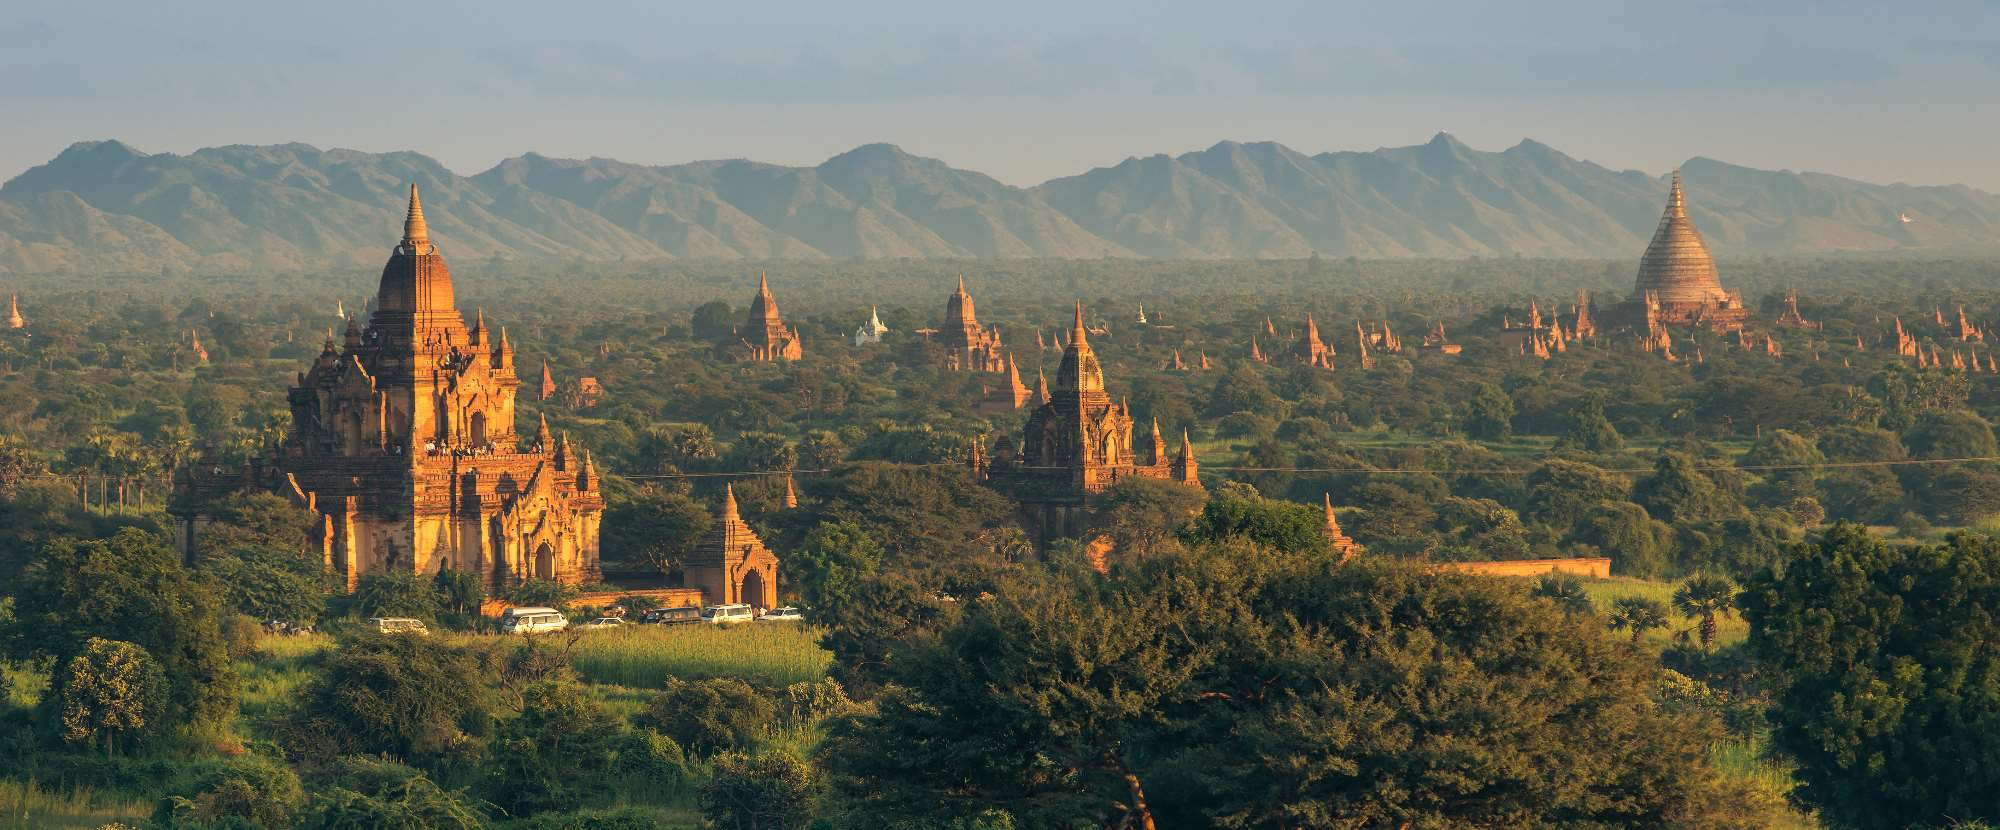 Top tips and handy hints for travel in Myanmar